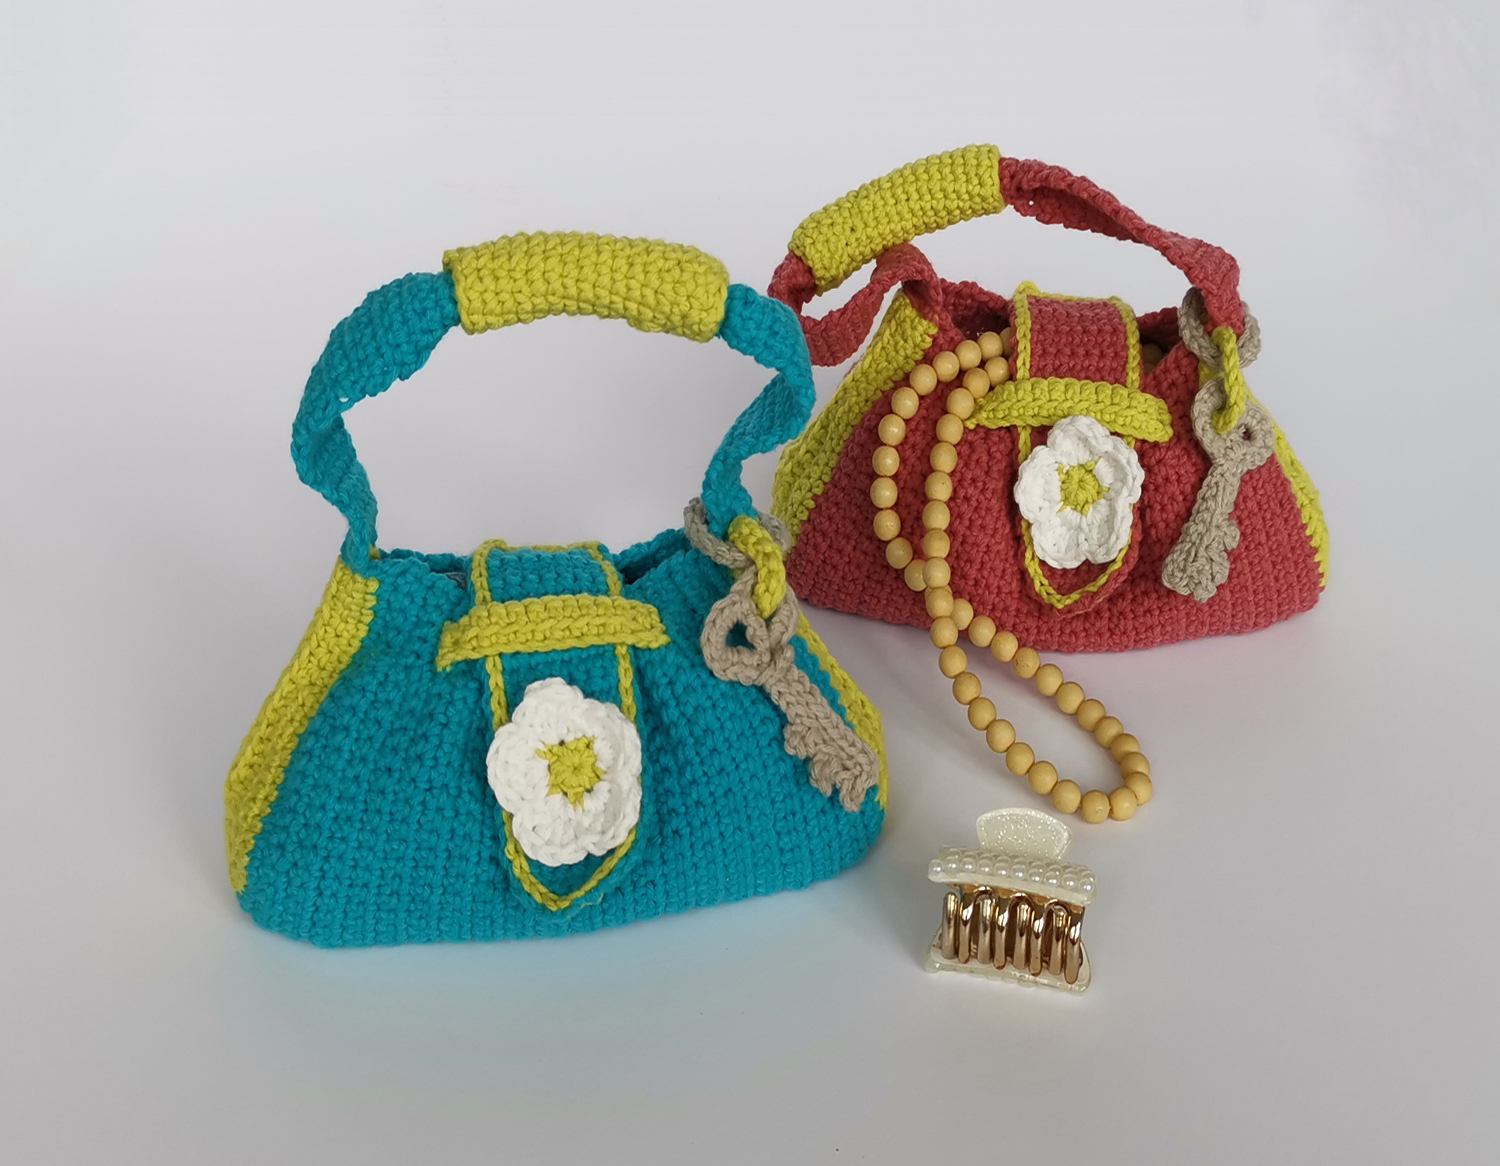 Coquette Crochet Bag